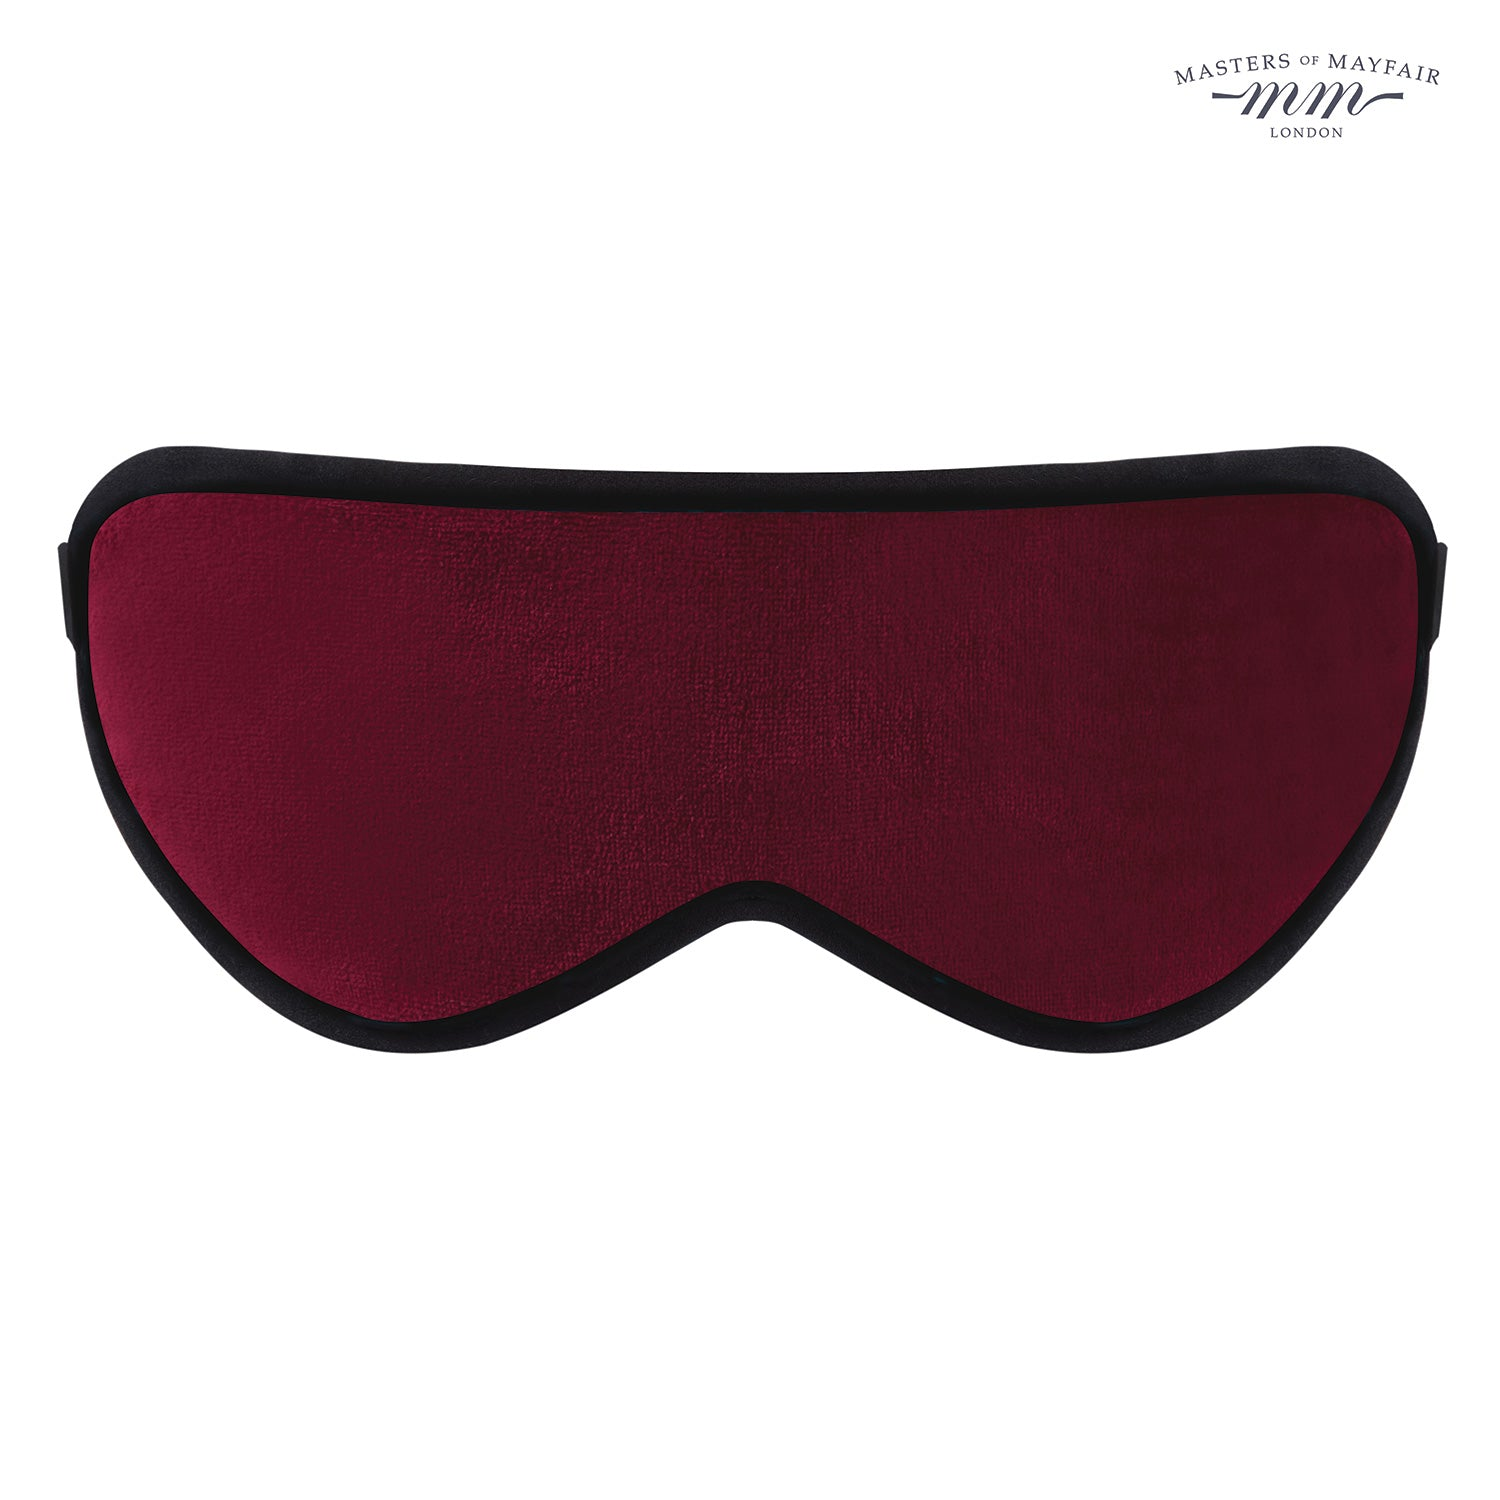 Luxury Silk Sleep Mask in Burgundy